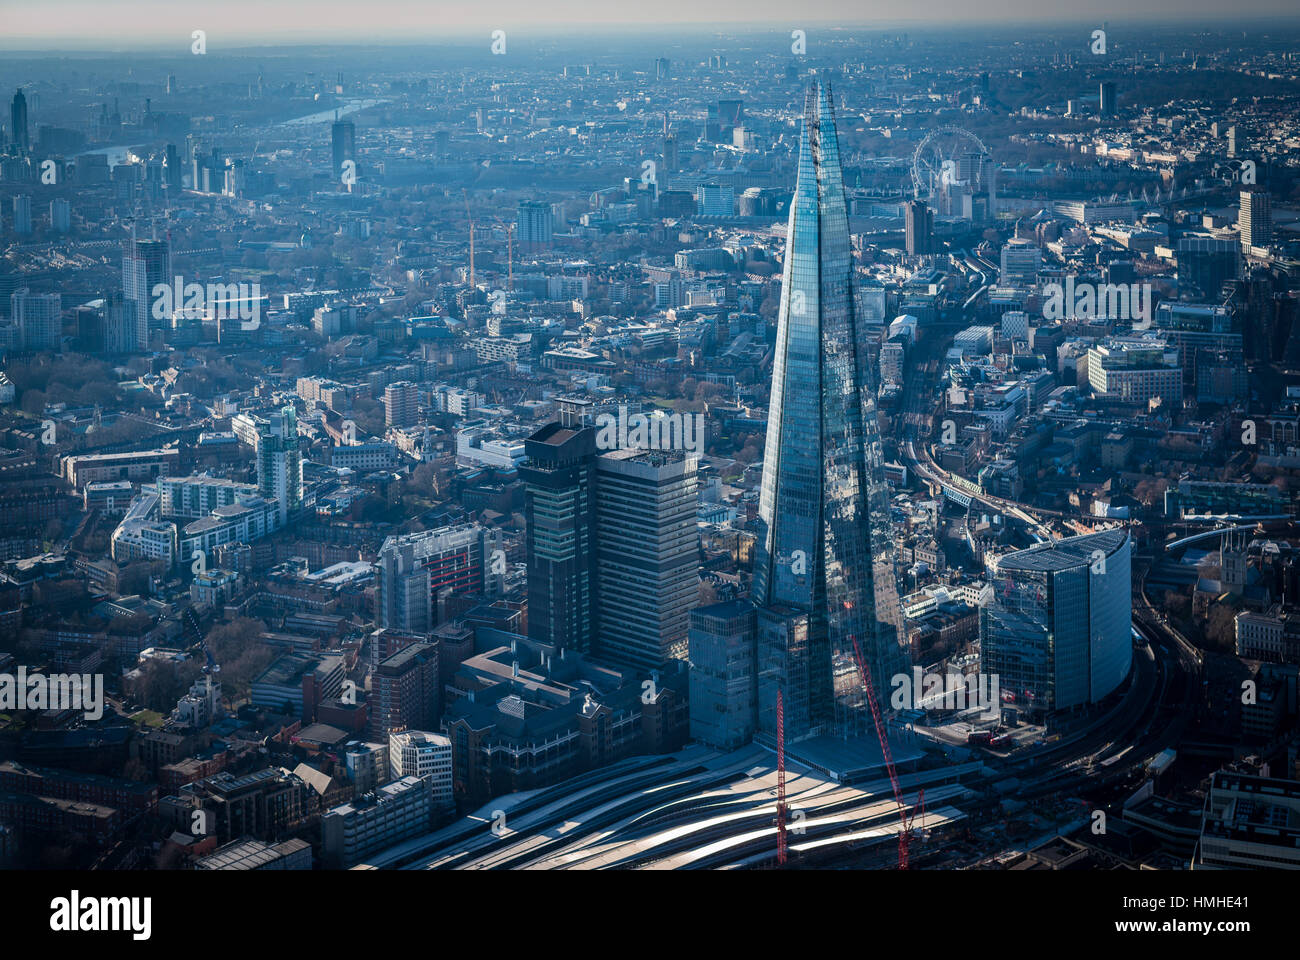 London from above, The Shard and London Eye seen from a helicopter - Stock Image